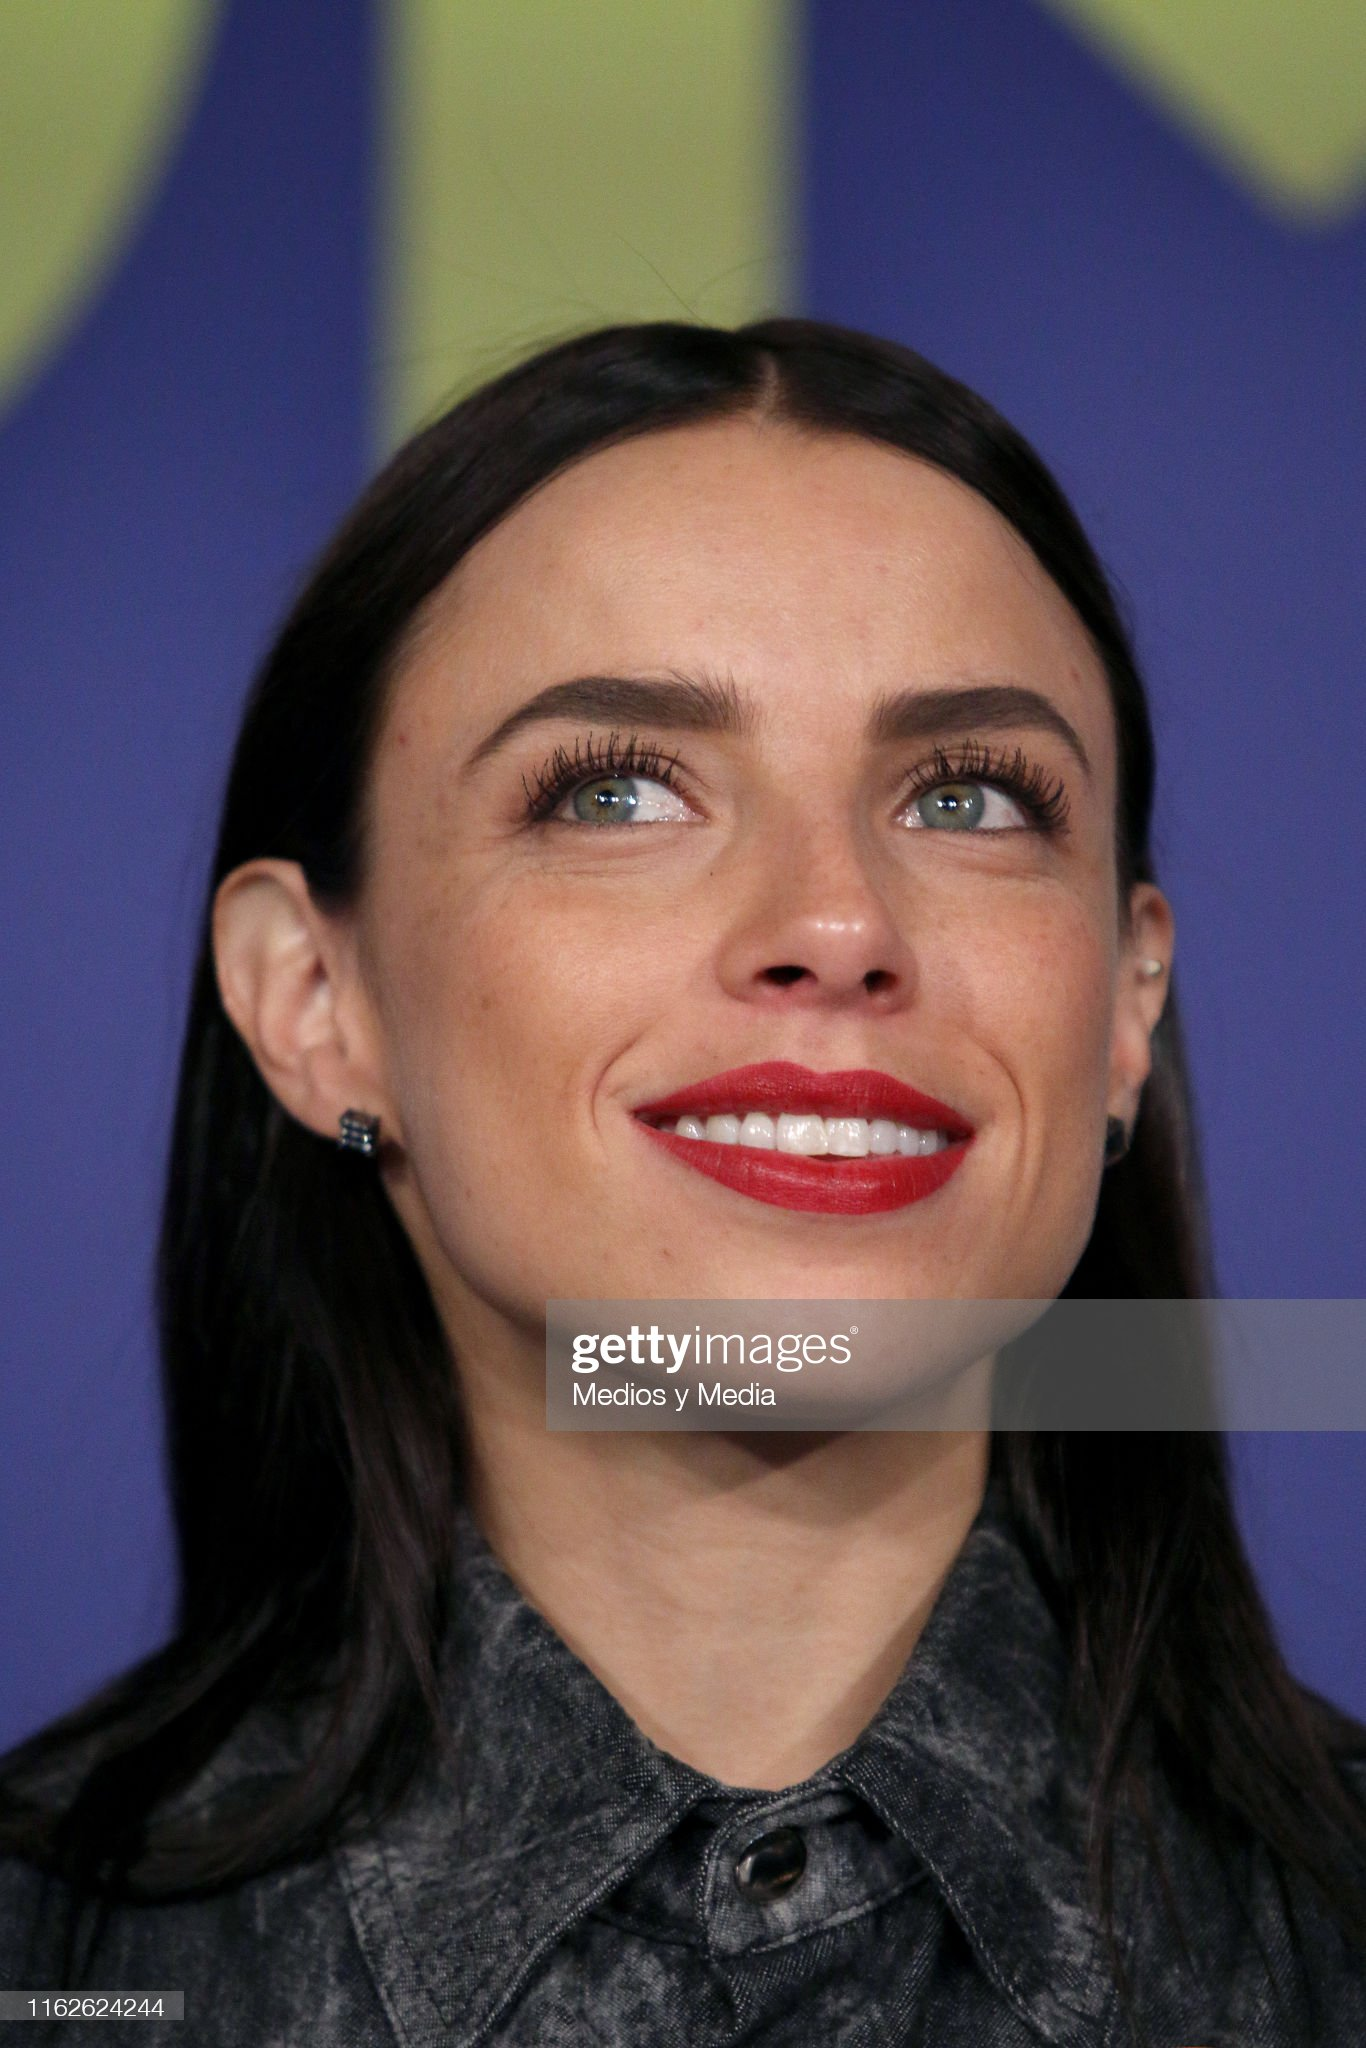 https://media.gettyimages.com/photos/marcela-guirado-smiles-during-conoces-a-toms-press-conference-at-picture-id1162624244?s=2048x2048